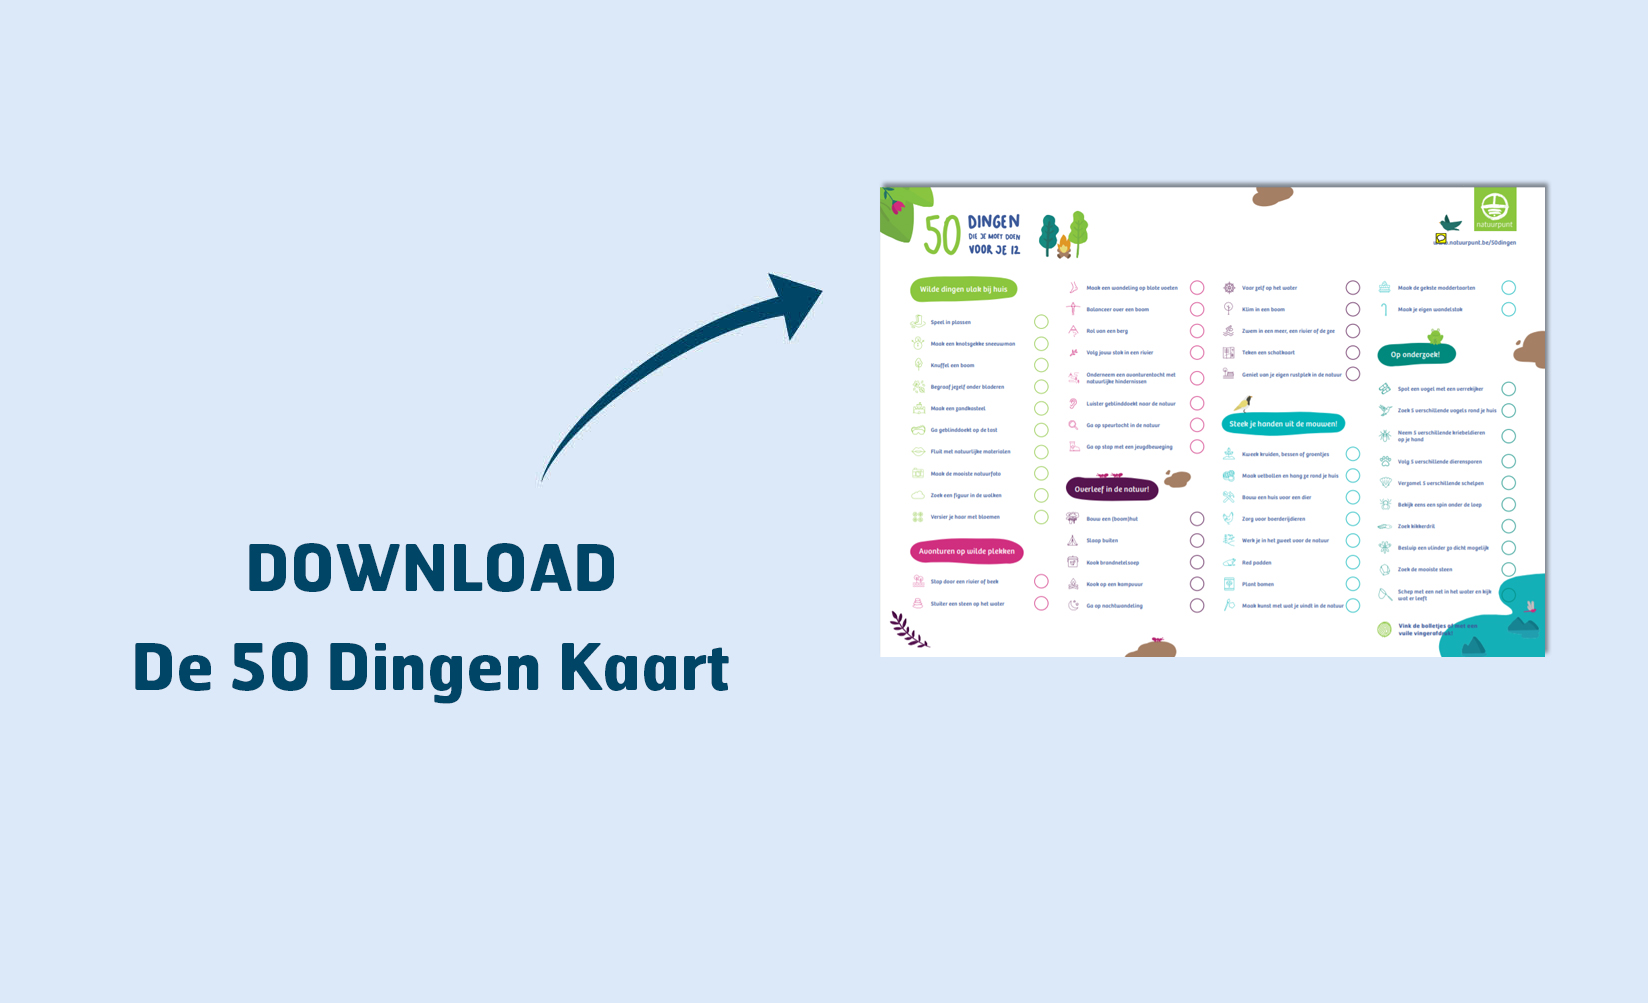 Download de 50 Dingen Kaart